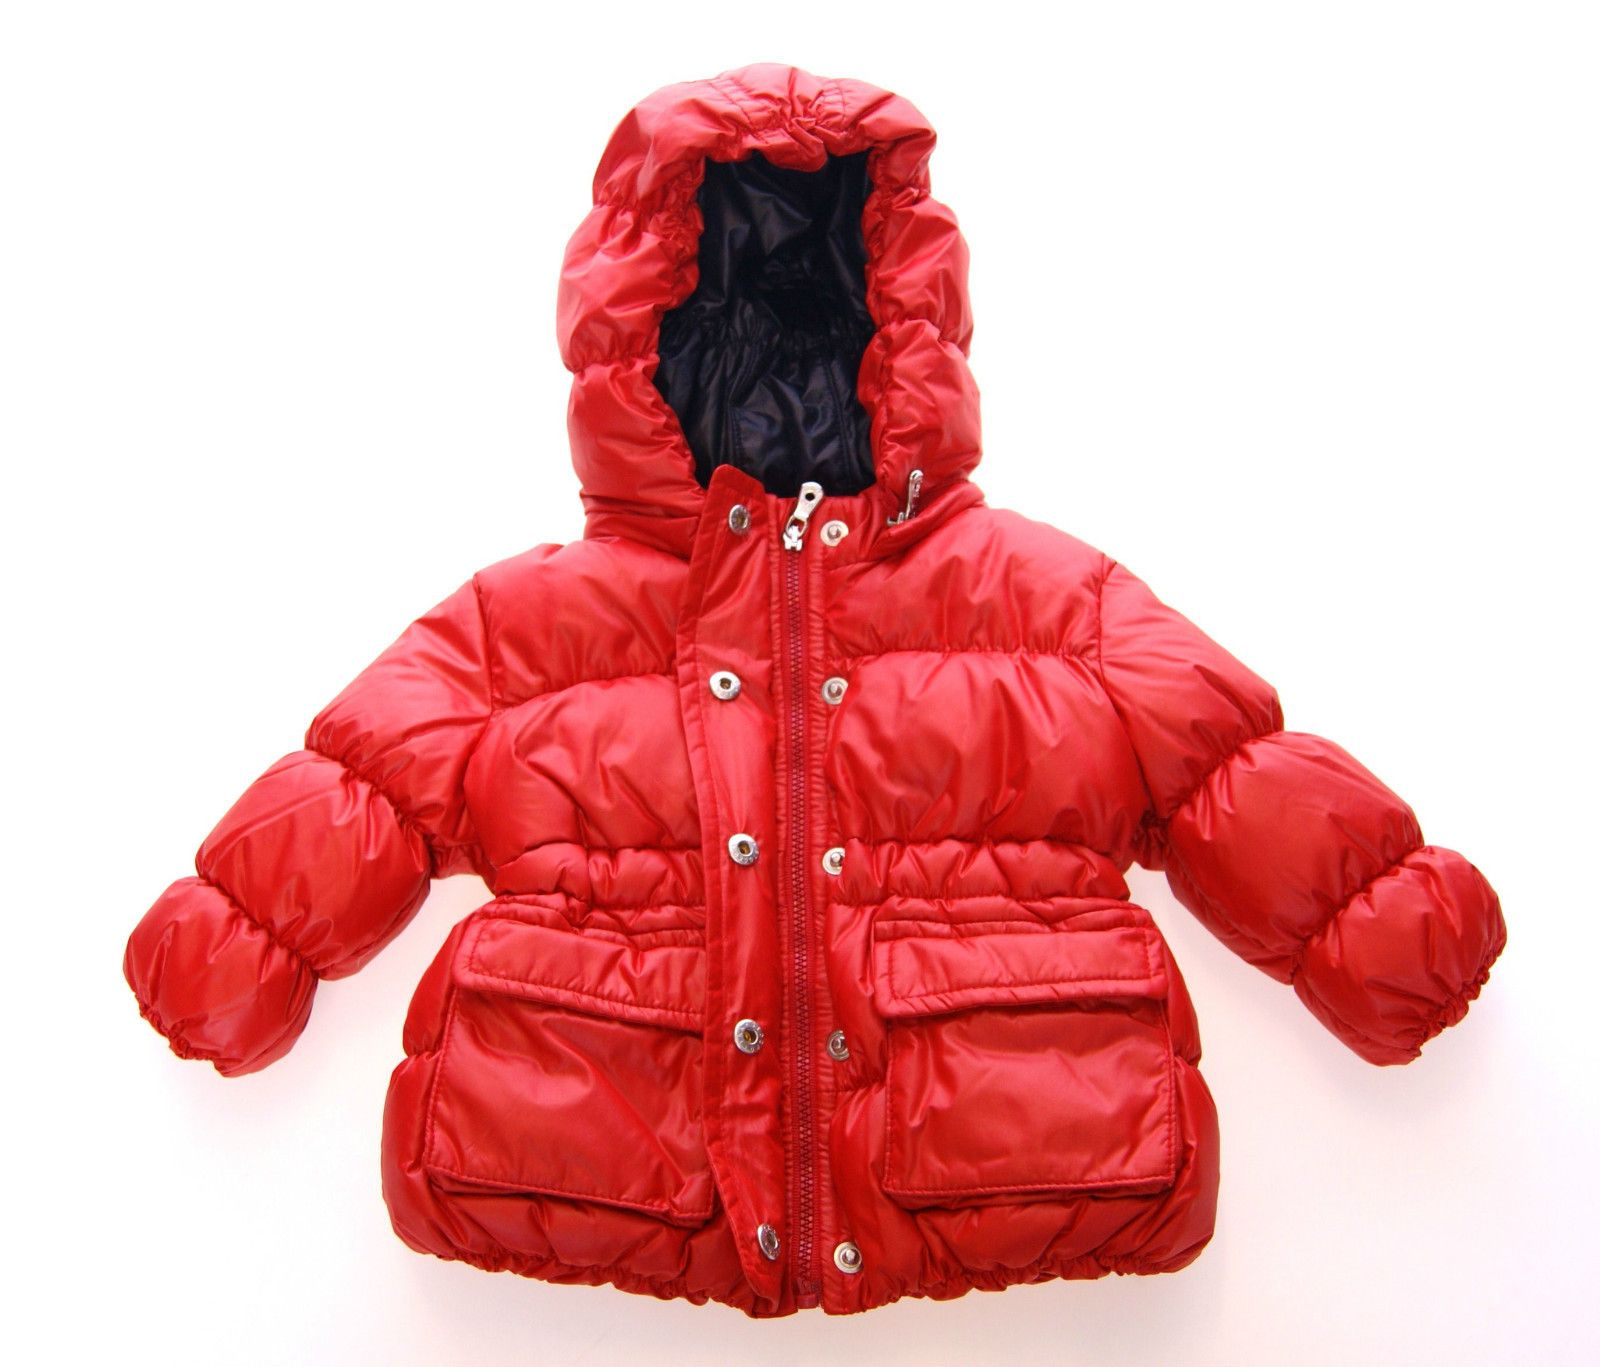 Nwt 360 Dolce Gabbana D G Child Junior Baby Red Coat Jacket S 3 6 Months Ebay Red Coat Dolce And Gabbana Coats Jackets [ 1367 x 1600 Pixel ]